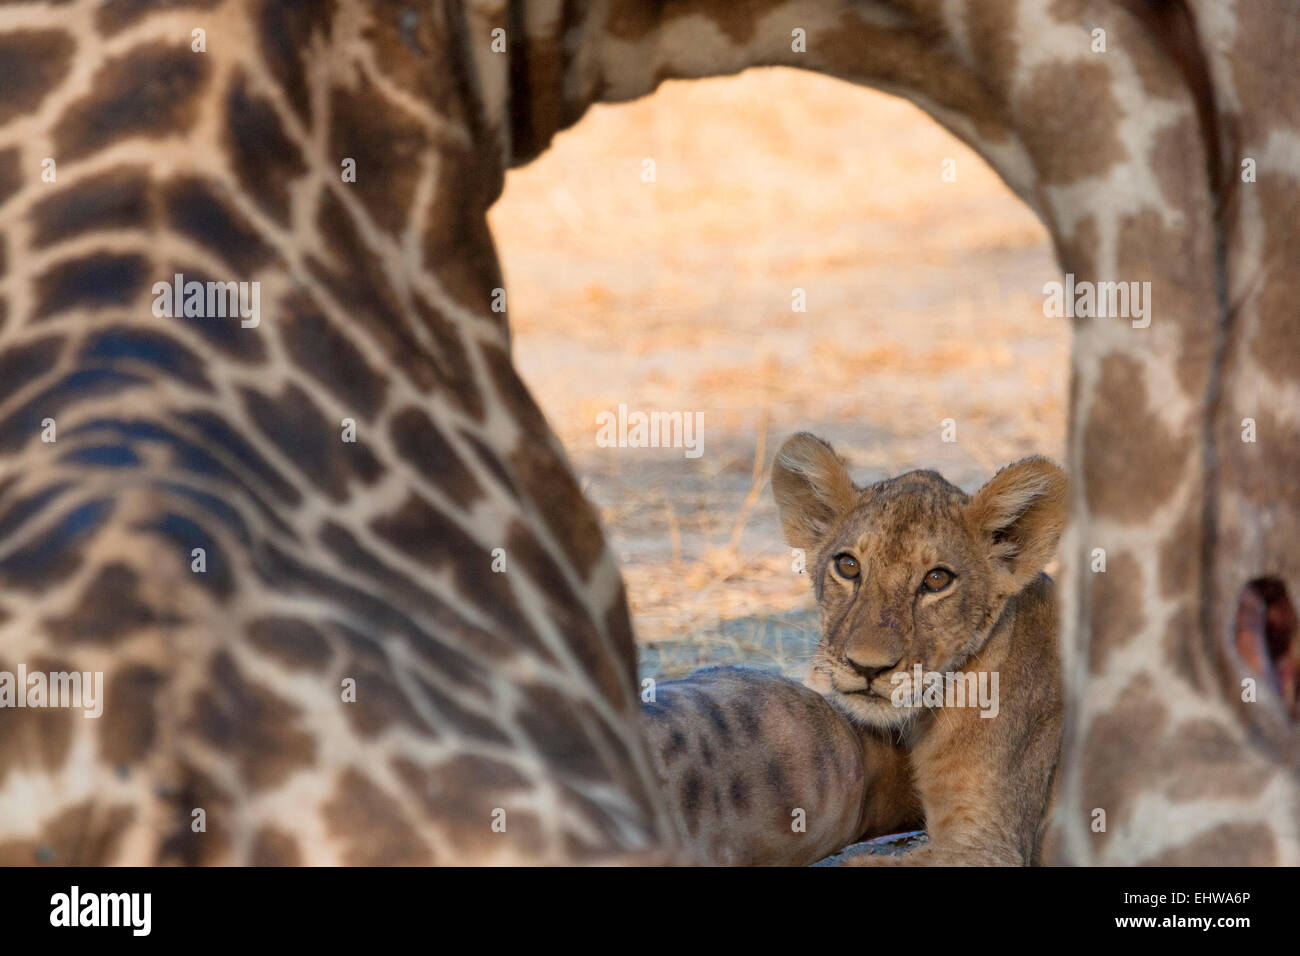 Lion cub visible though the neck of a Giraffe carcass. - Stock Image